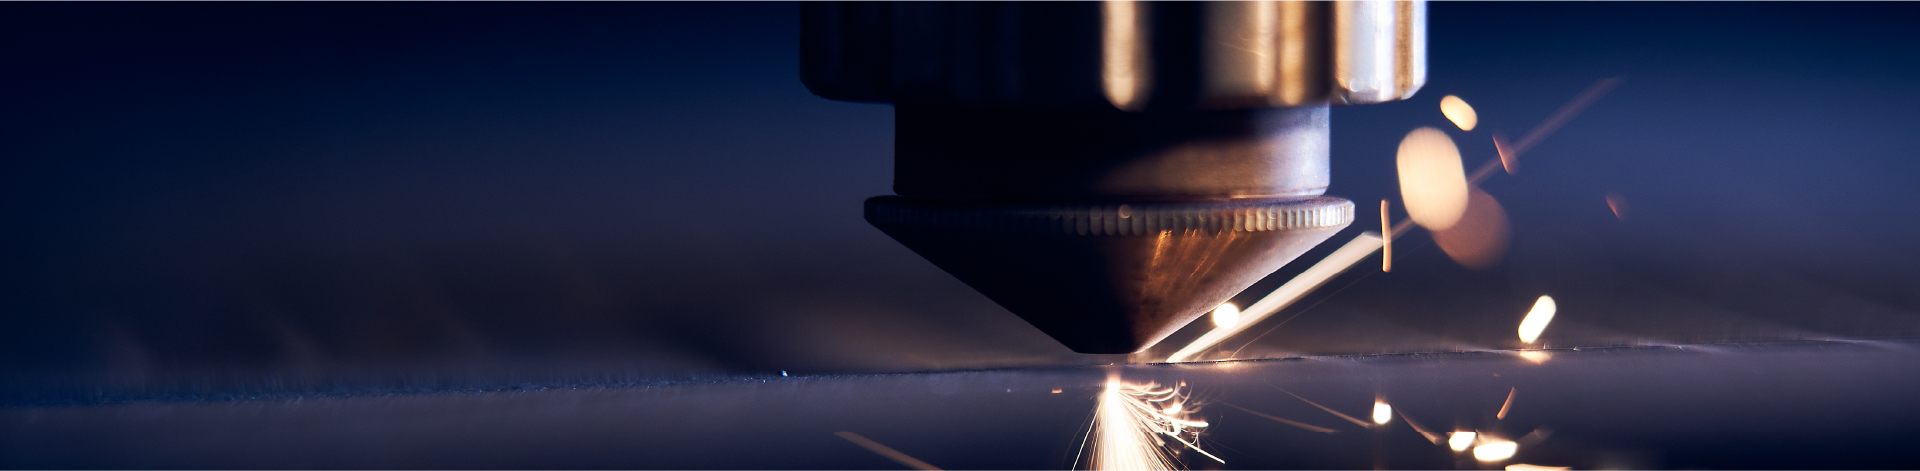 laser cutting for modern industrial technology